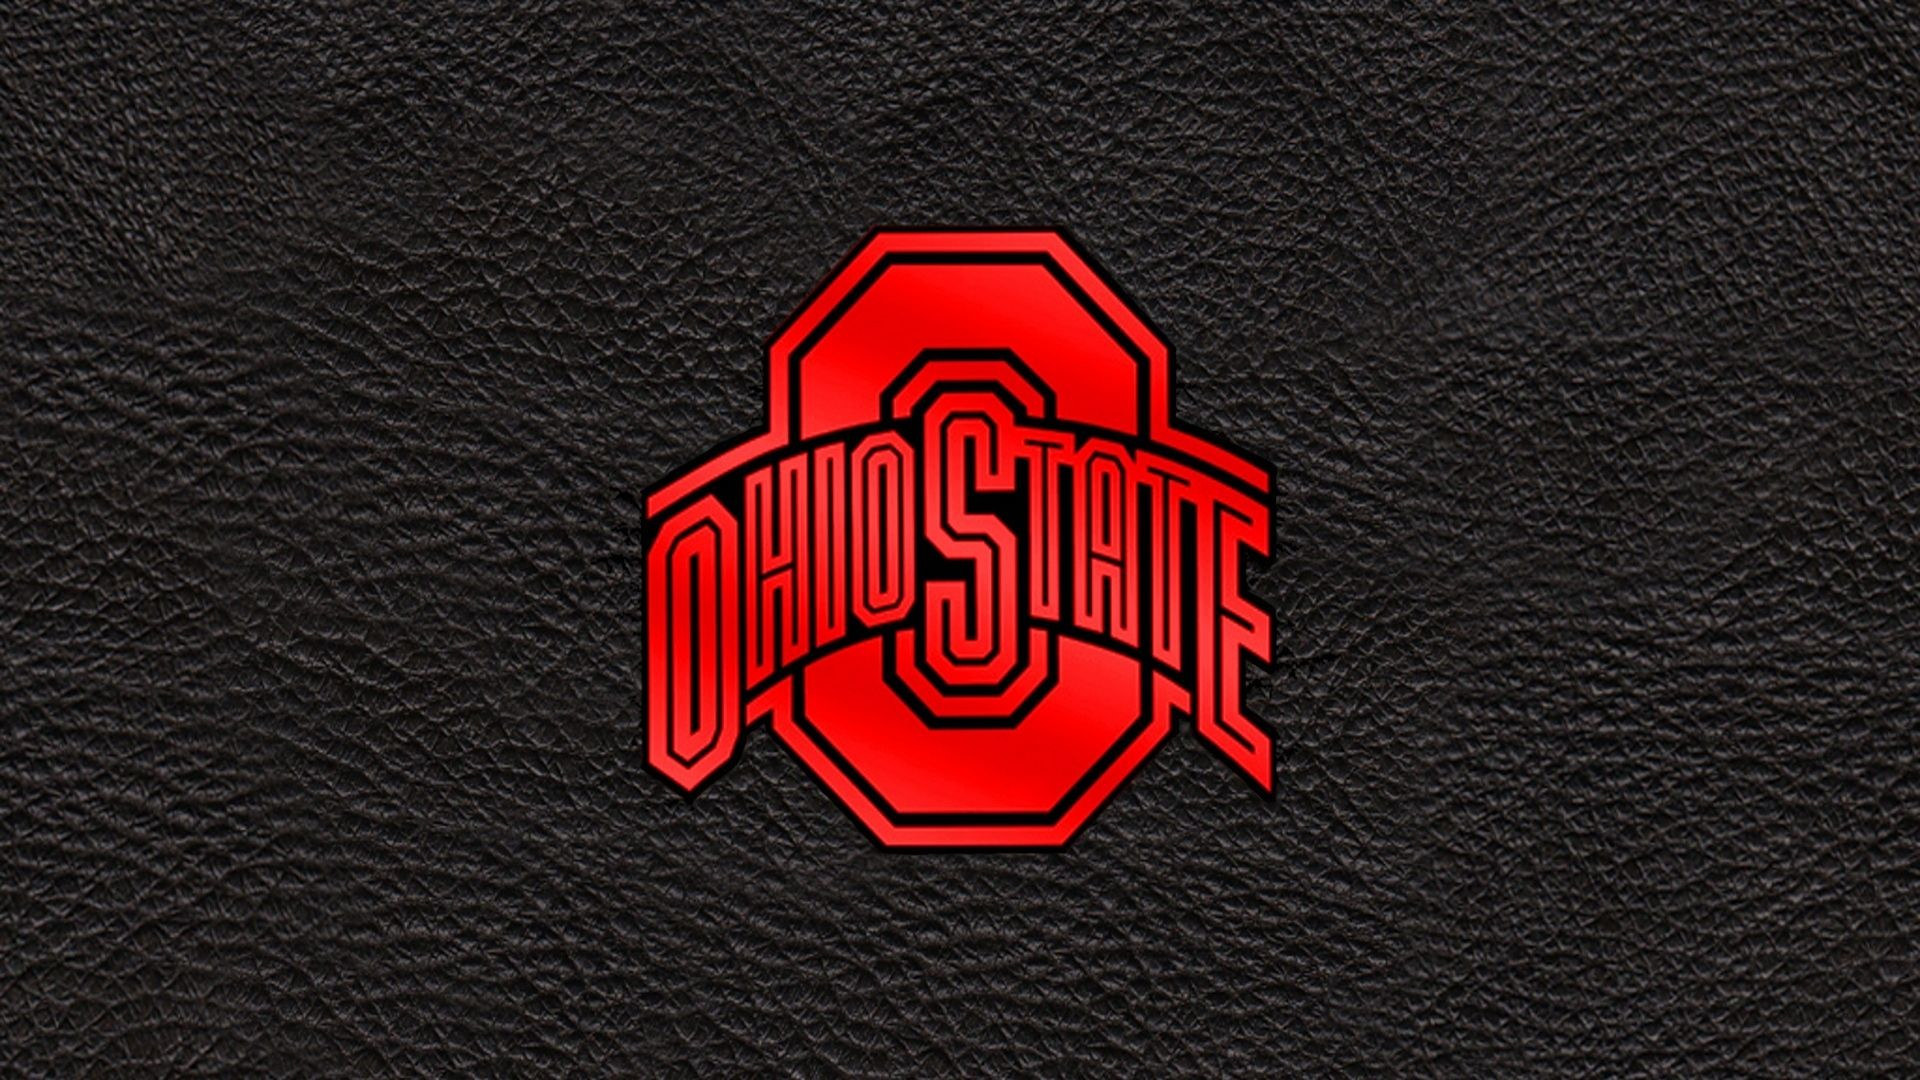 Res: 1920x1080, Ohio State Football Wallpaper Iphone 6 - Download New Ohio State Football Wallpaper  Iphone 6for iPhone